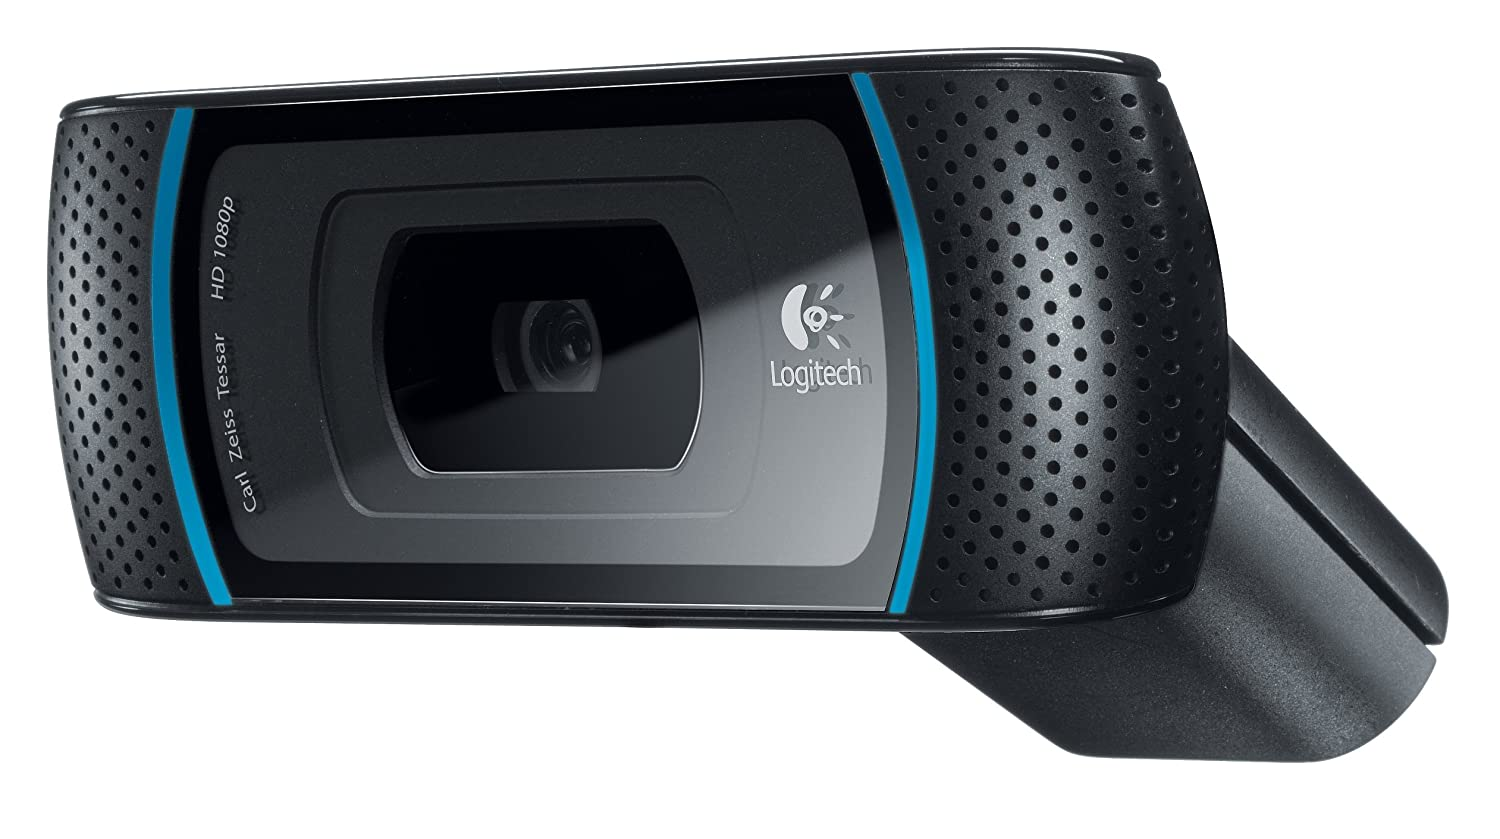 LOGITECH CARL ZEISS TESSAR WINDOWS 8 X64 DRIVER DOWNLOAD